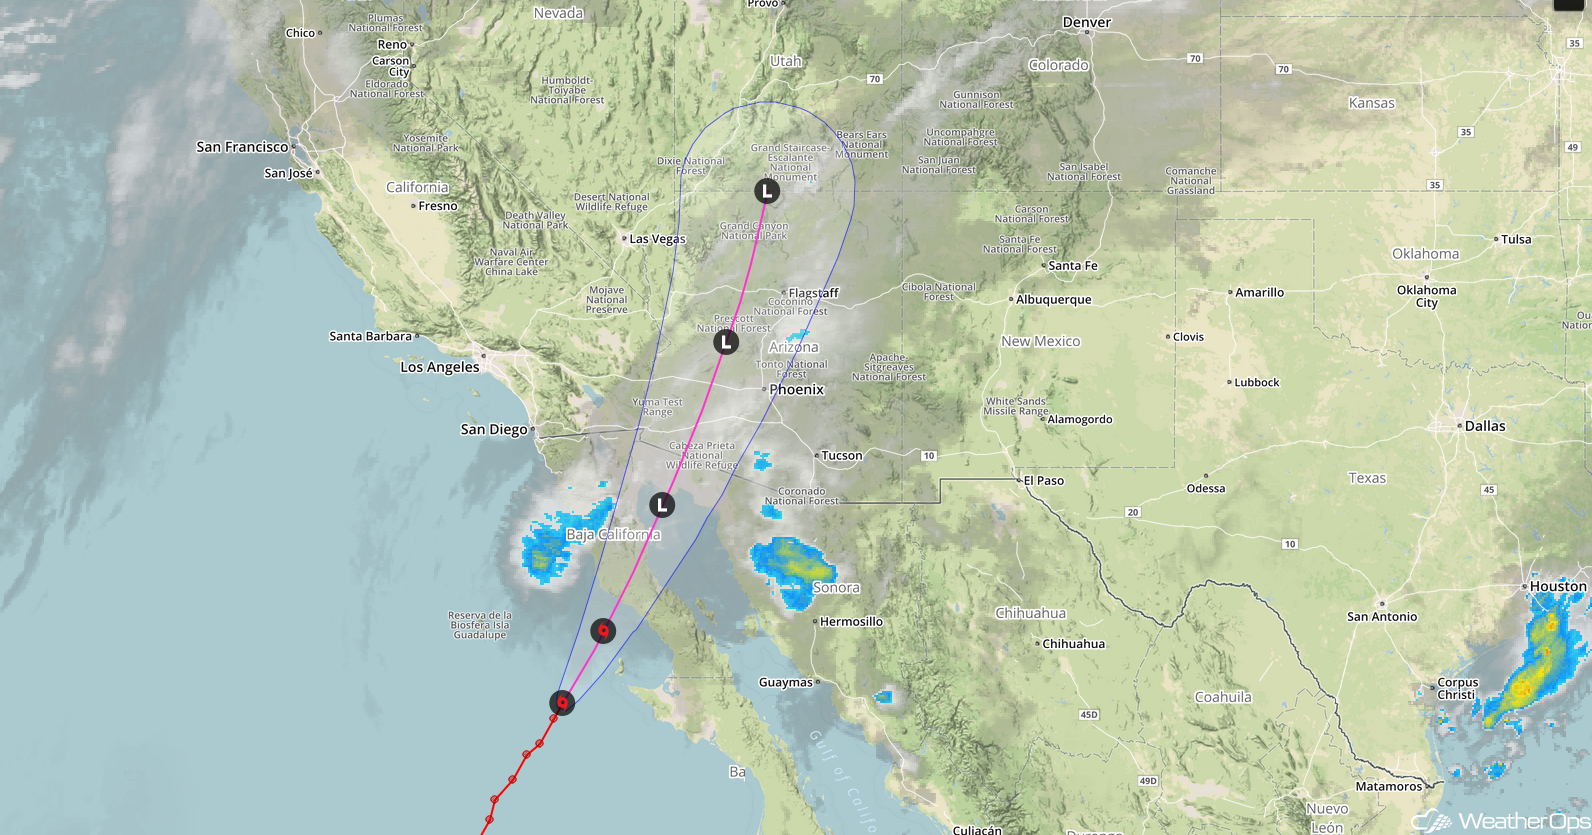 Tropical Storm Rosa Satellite Image and Forecast Track